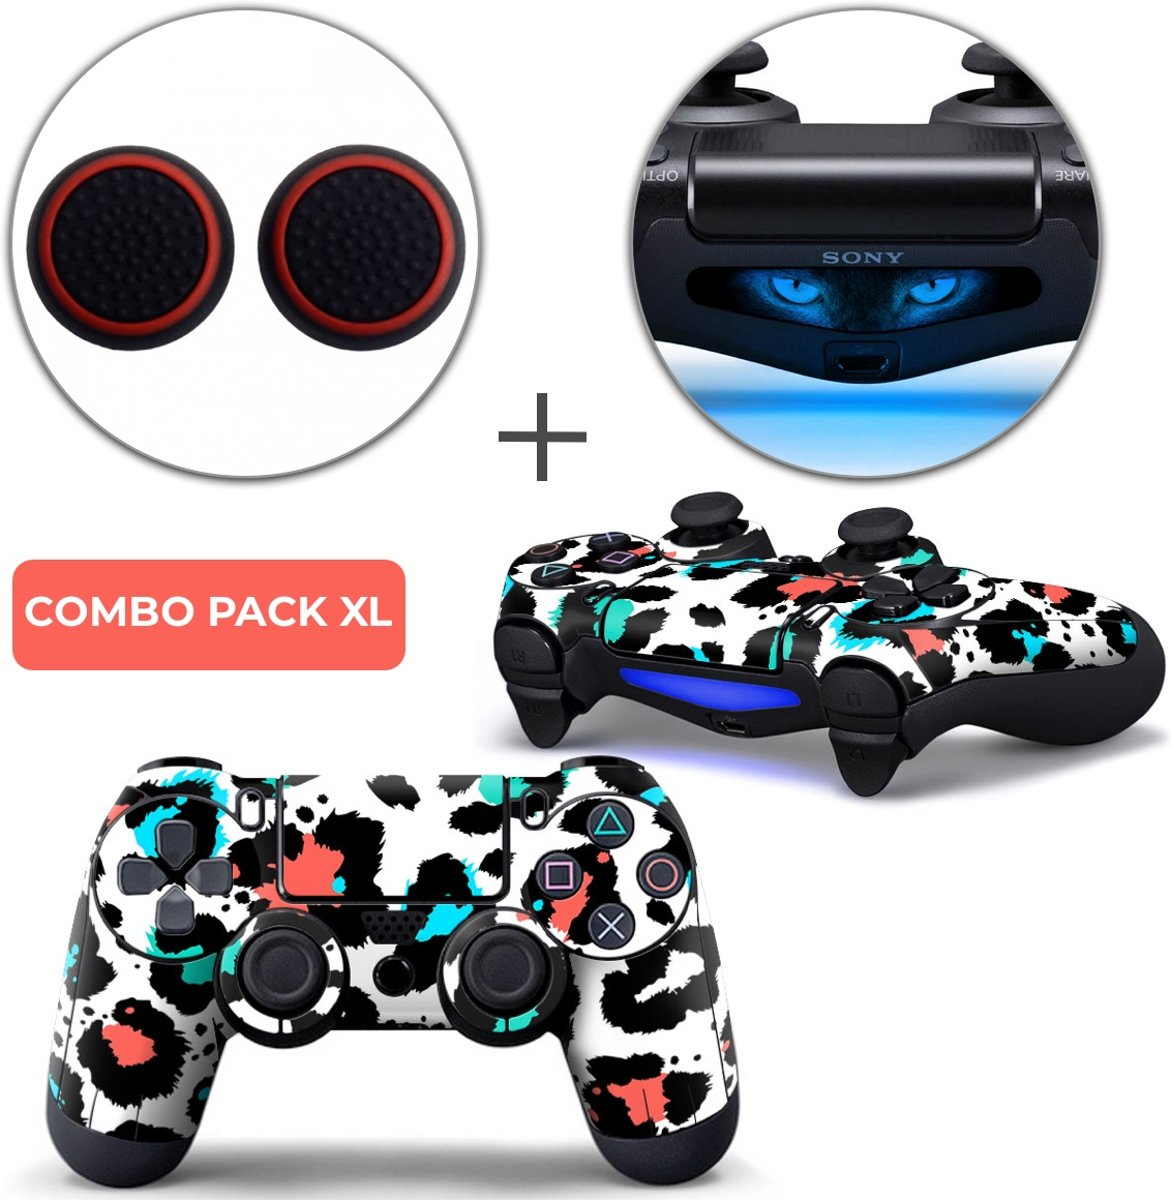 Luipaard Print Multi Combo Pack XL - PS4 Controller Skins PlayStation Stickers + Thumb Grips + Lightbar Skin Sticker